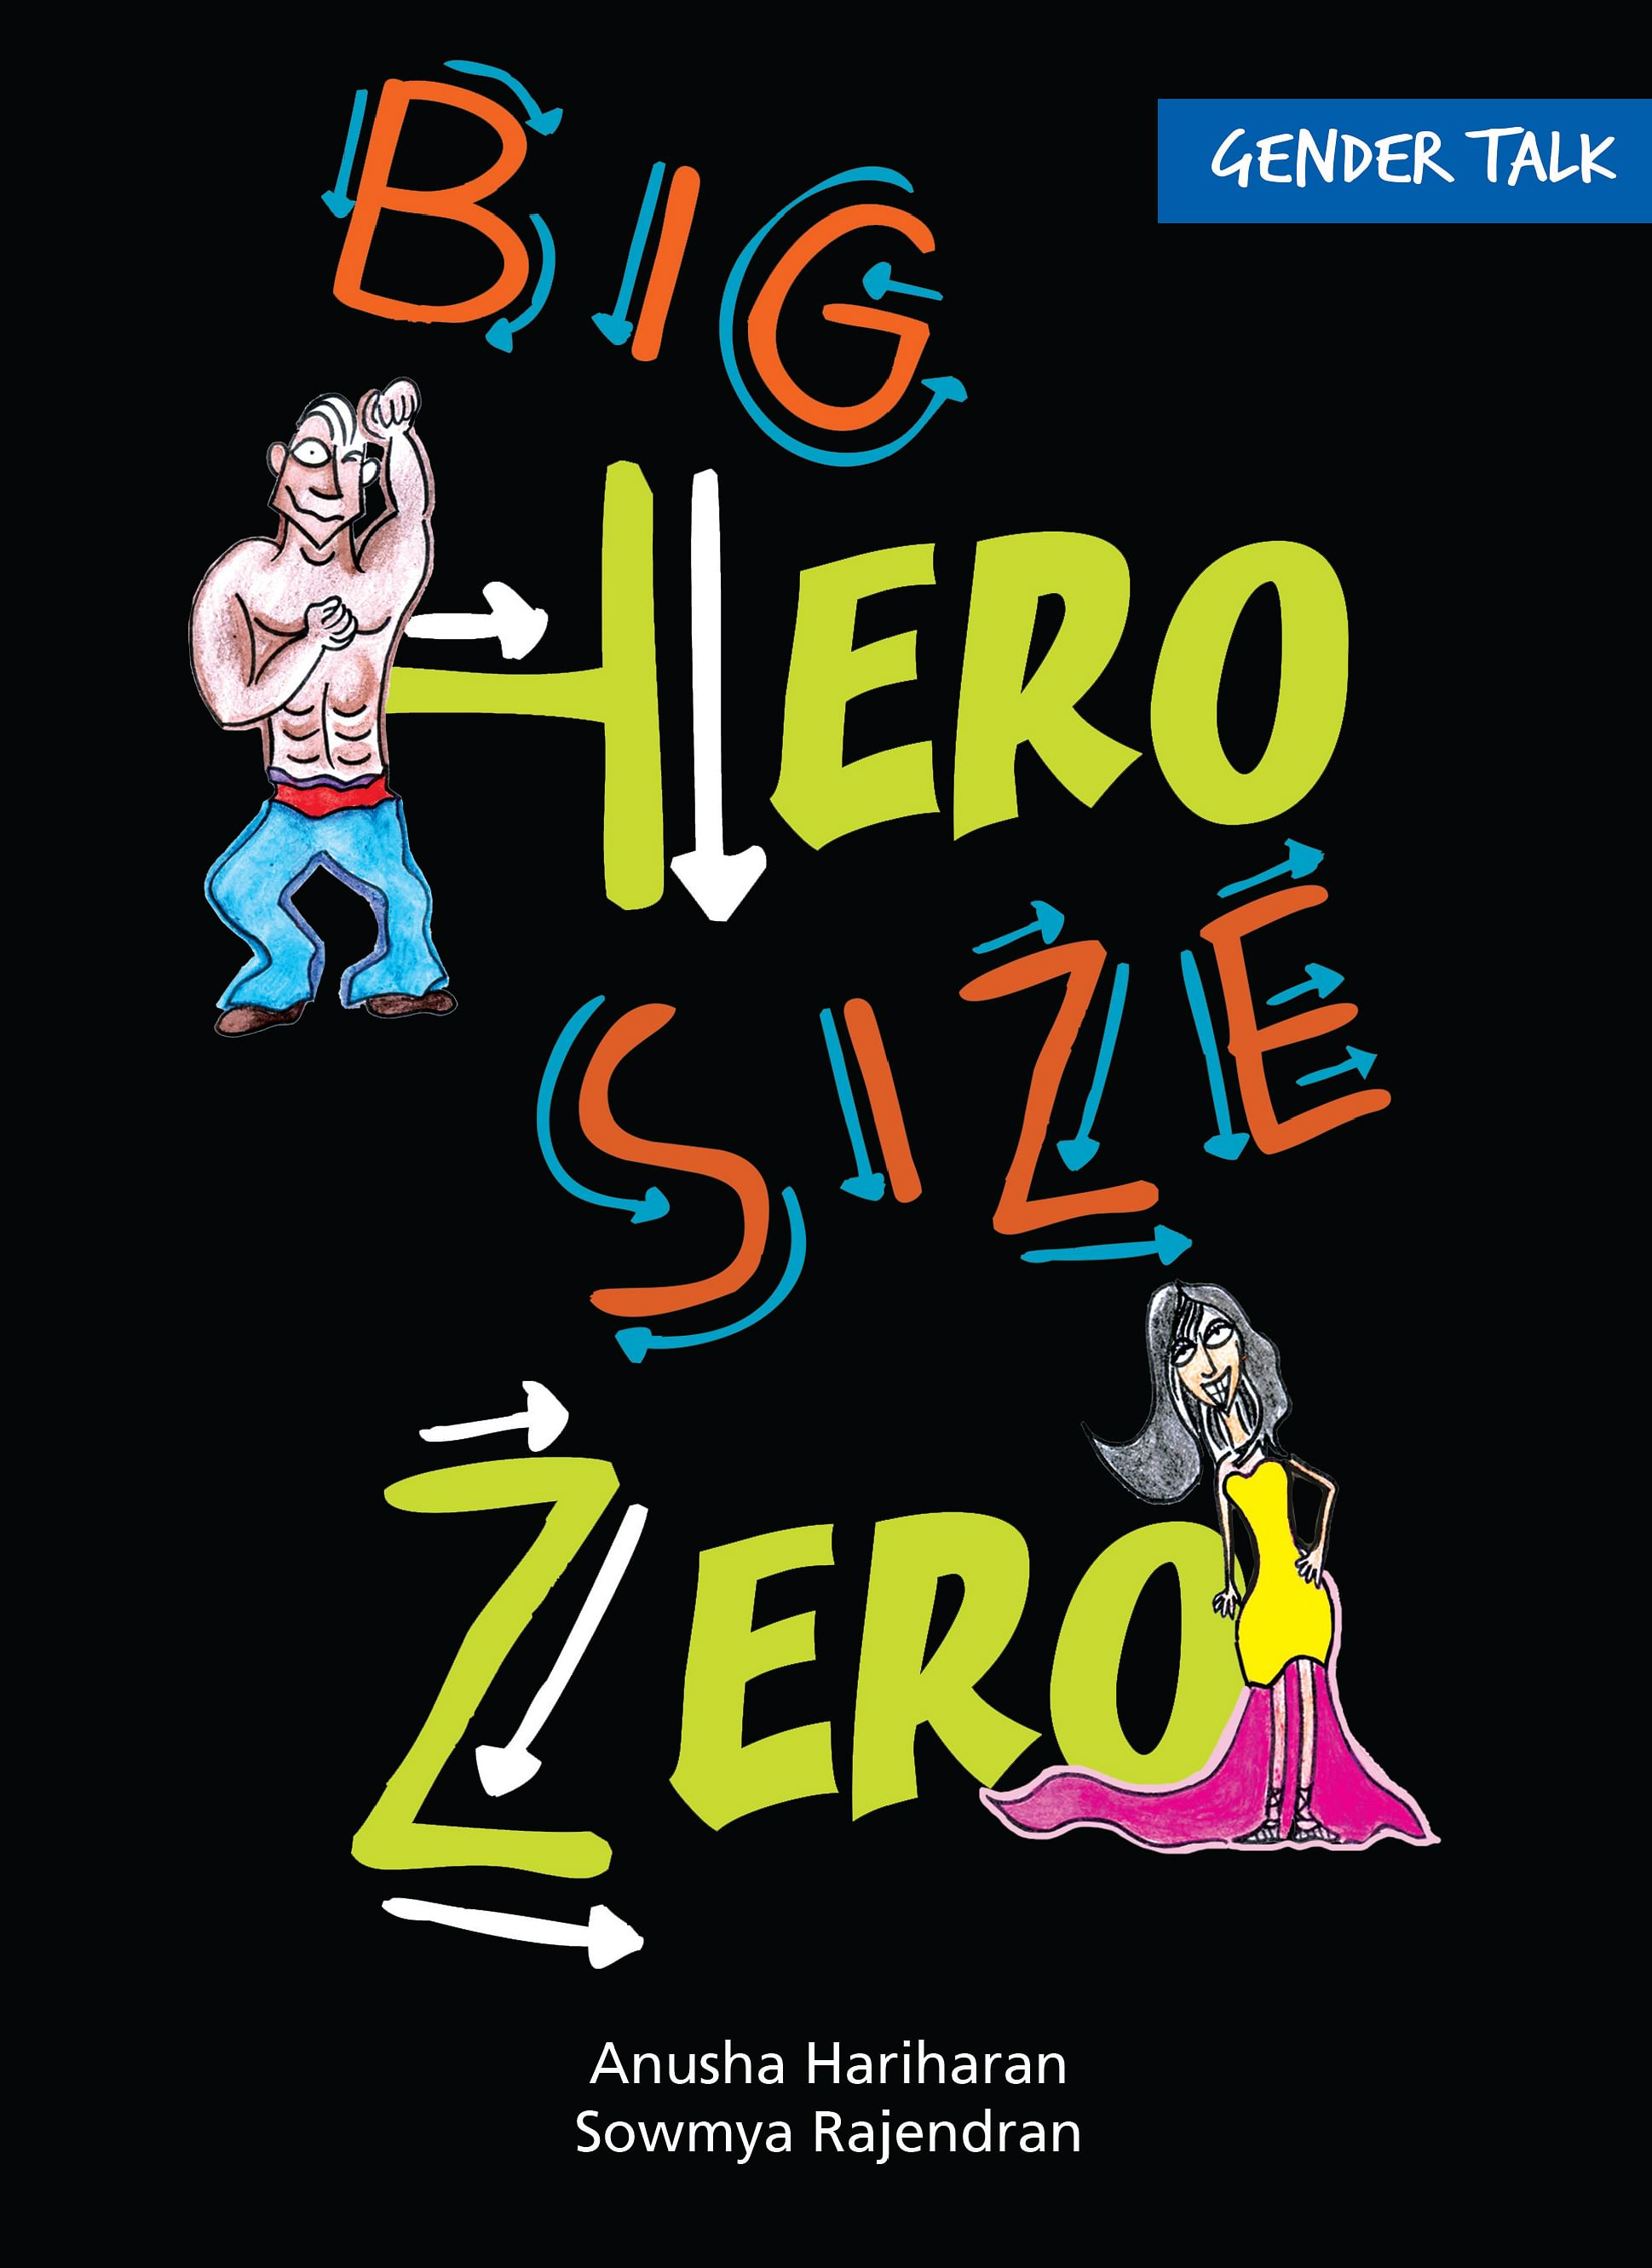 Cover: 'Gender Talk – Big Hero, Size Zero' By Sowmya Rajendran and Anusha Hariharan; published by Tullika Books; Pp: 108; Price: Rs 225.